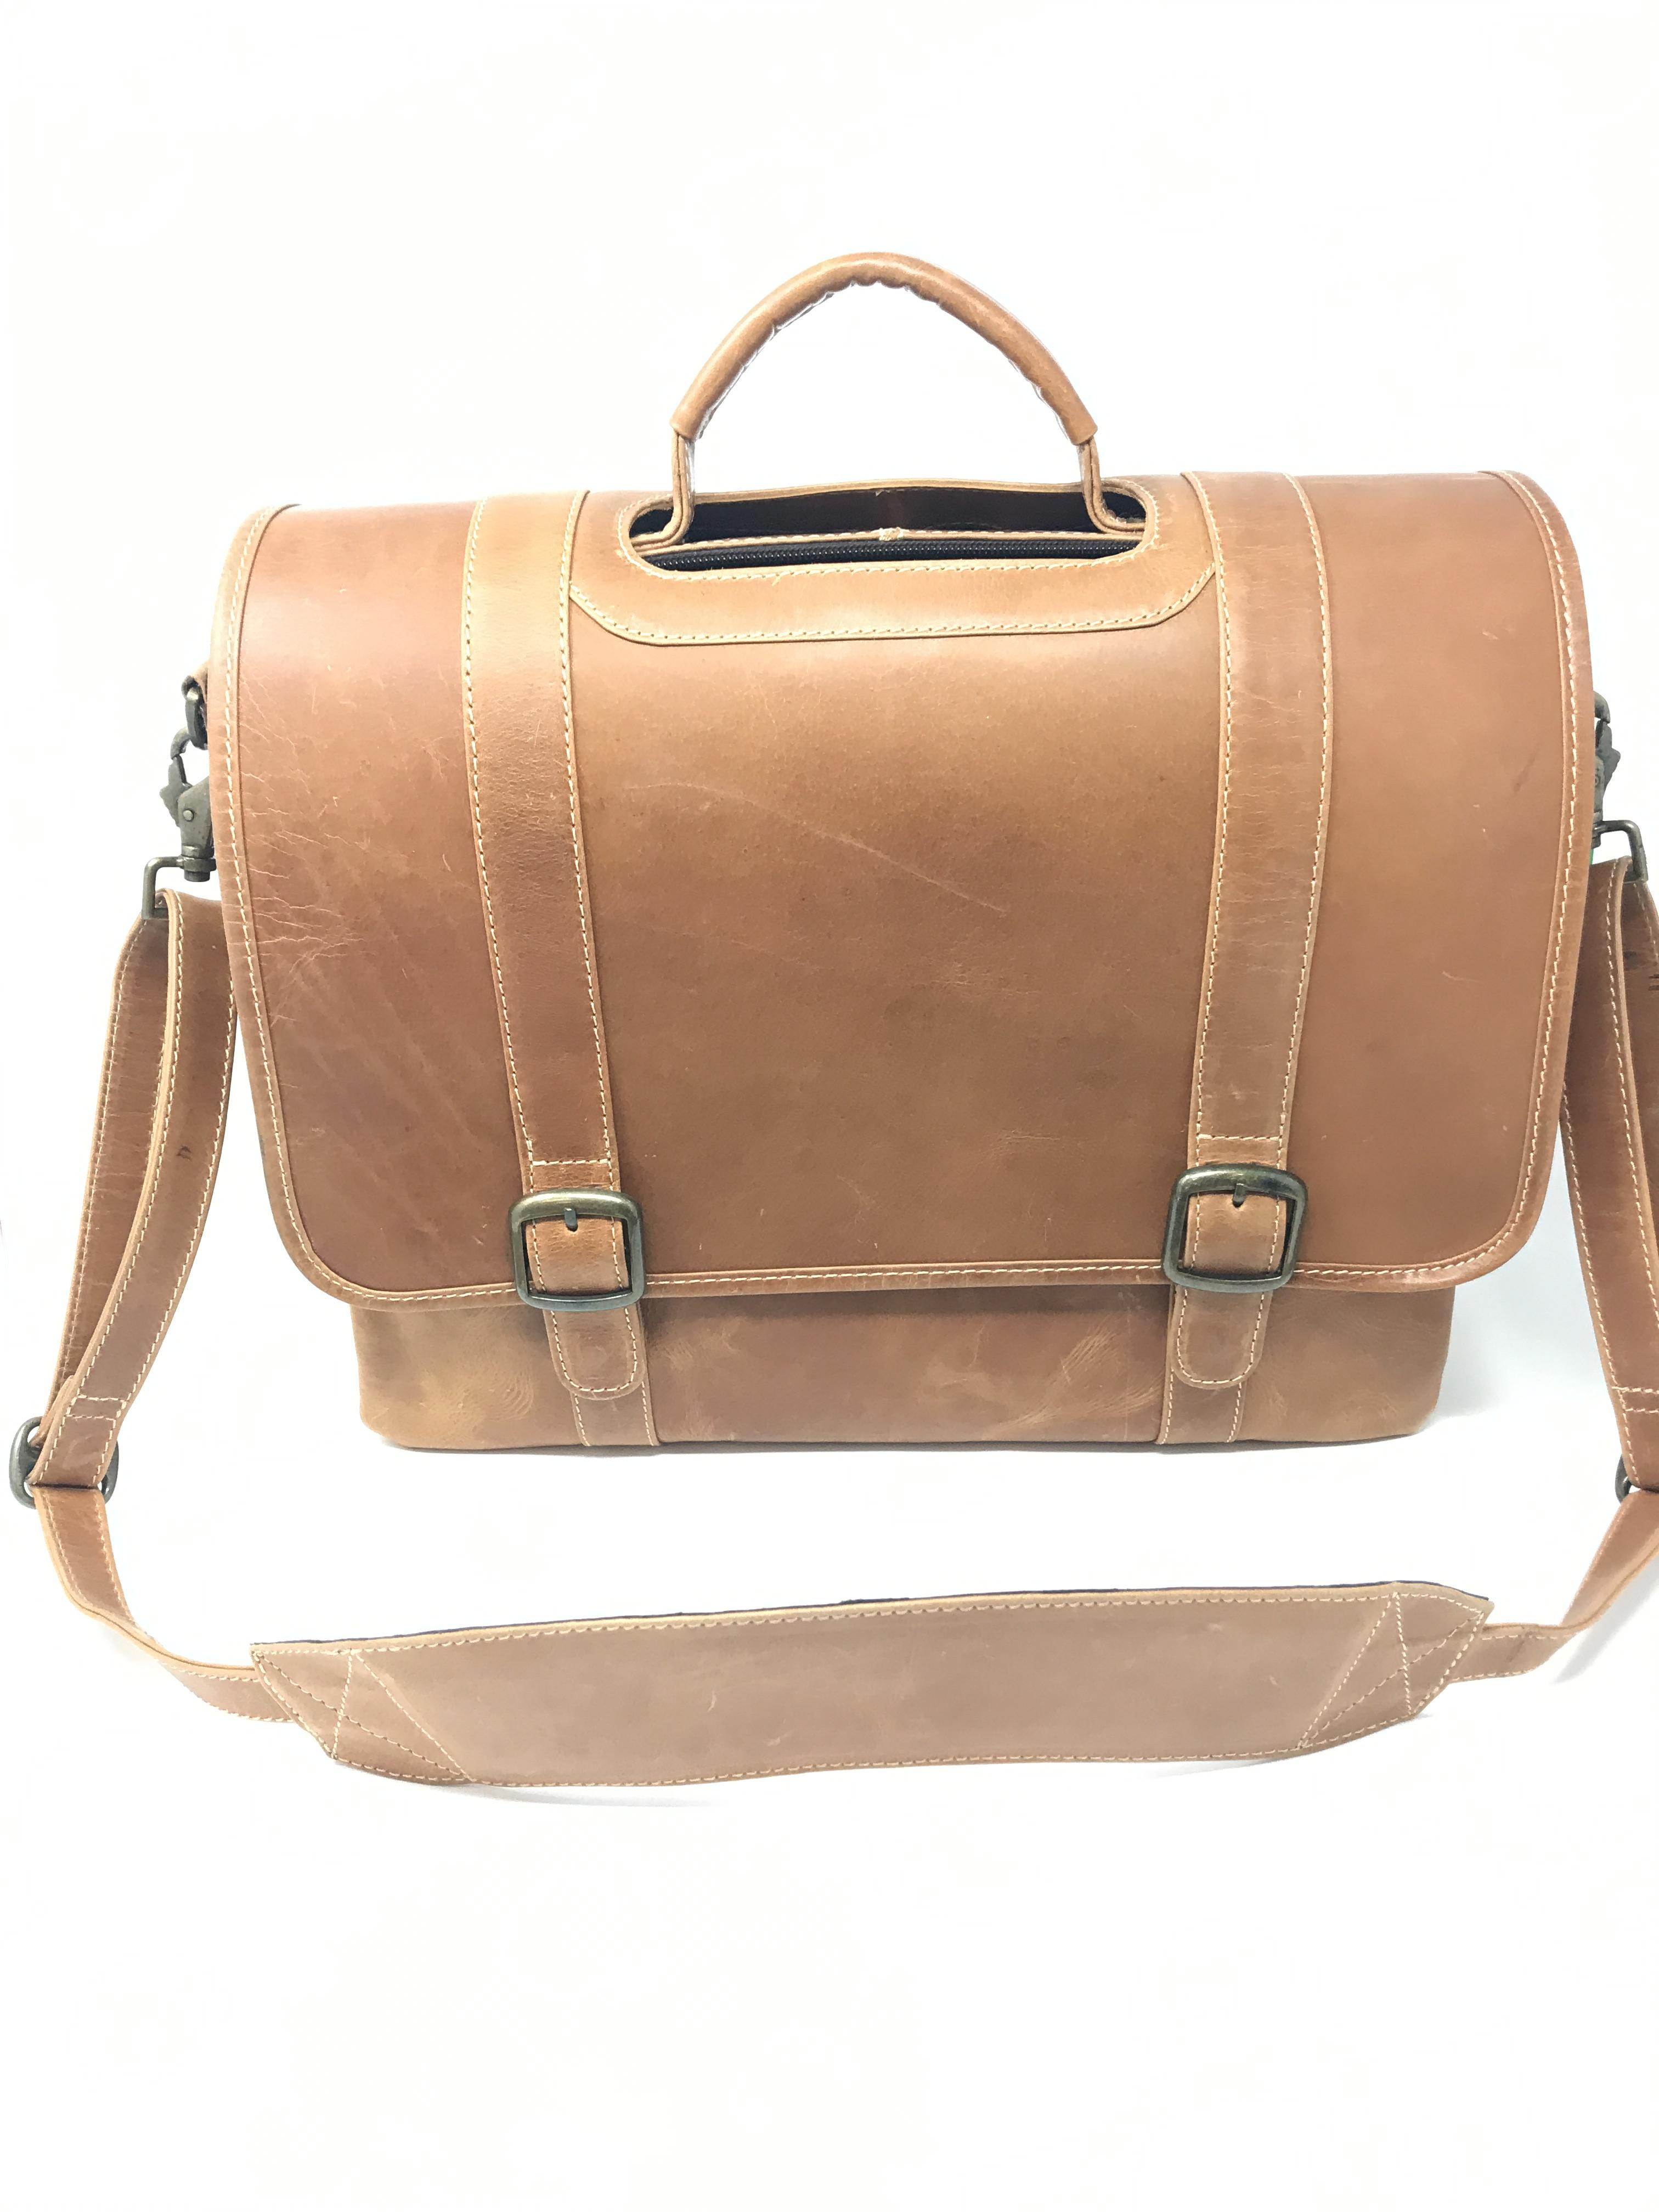 Brown Messenger Purses, Handbags Price: $98.99